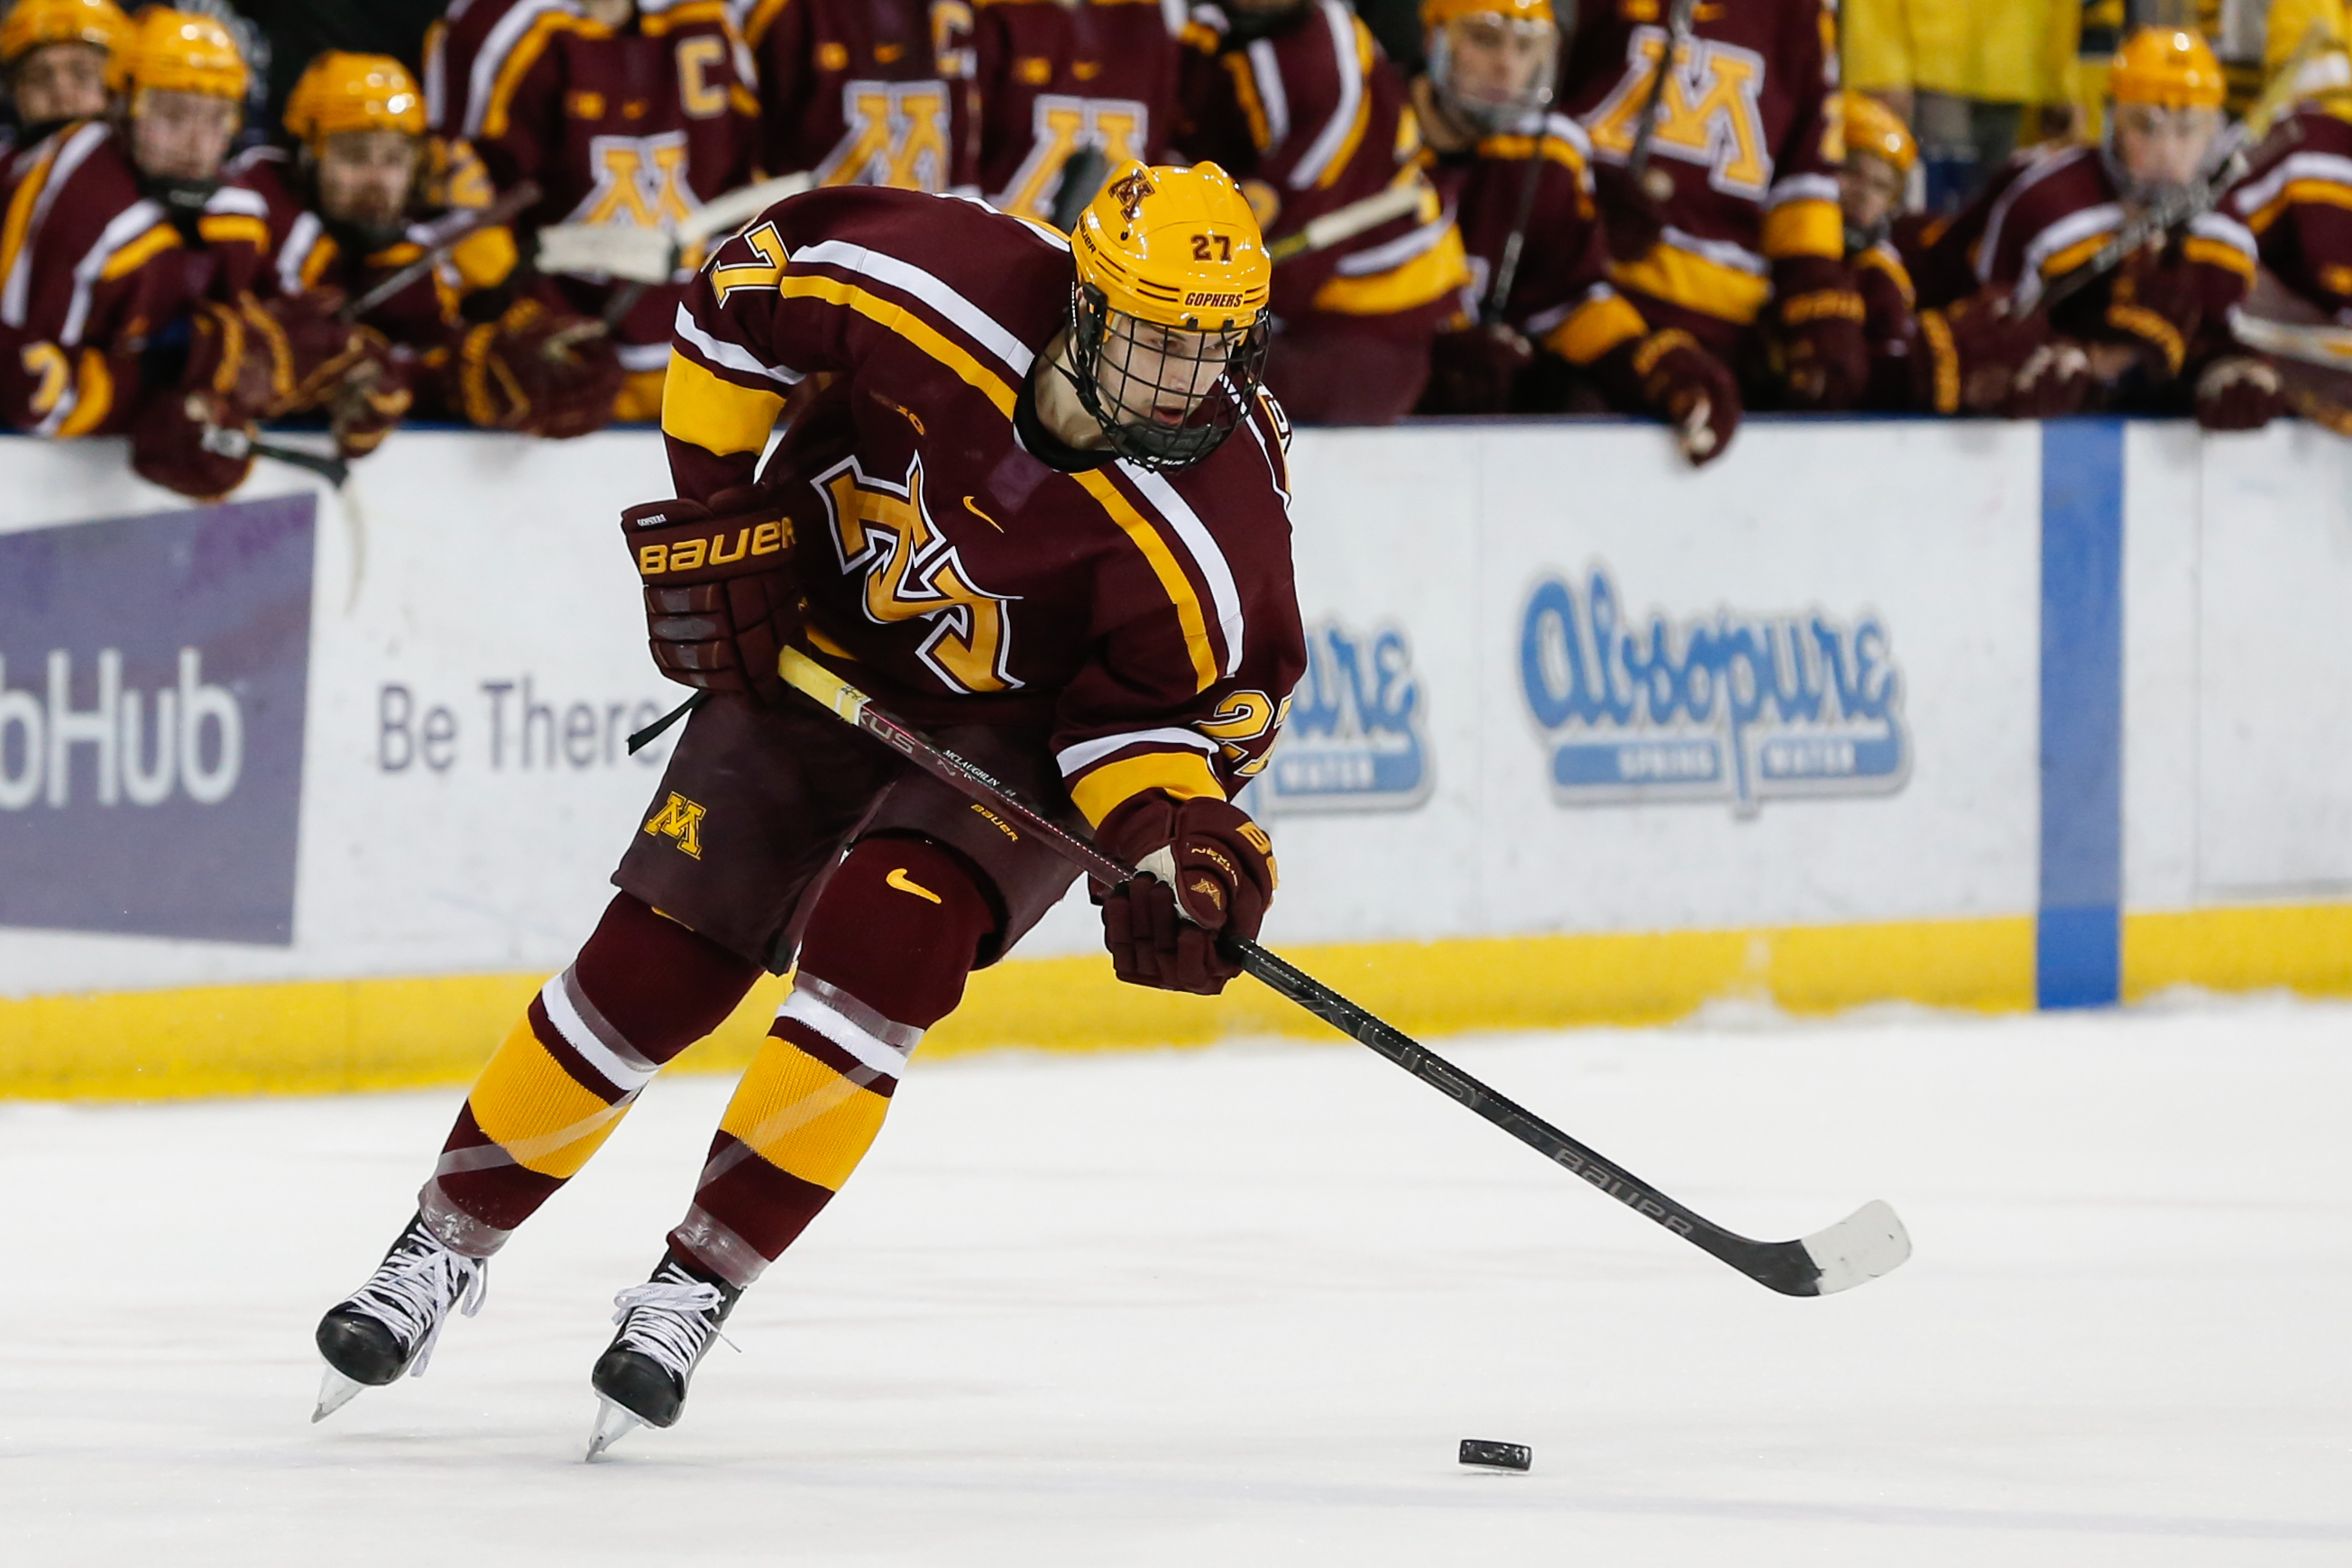 Minnesota Golden Gophers forward Blake McLaughlin (27) skates with the puck during a regular season Big 10 Conference hockey game between the Minnesota Golden Gophers and Michigan Wolverines on December 8, 2018 at Yost Ice Arena in Ann Arbor, Michigan.